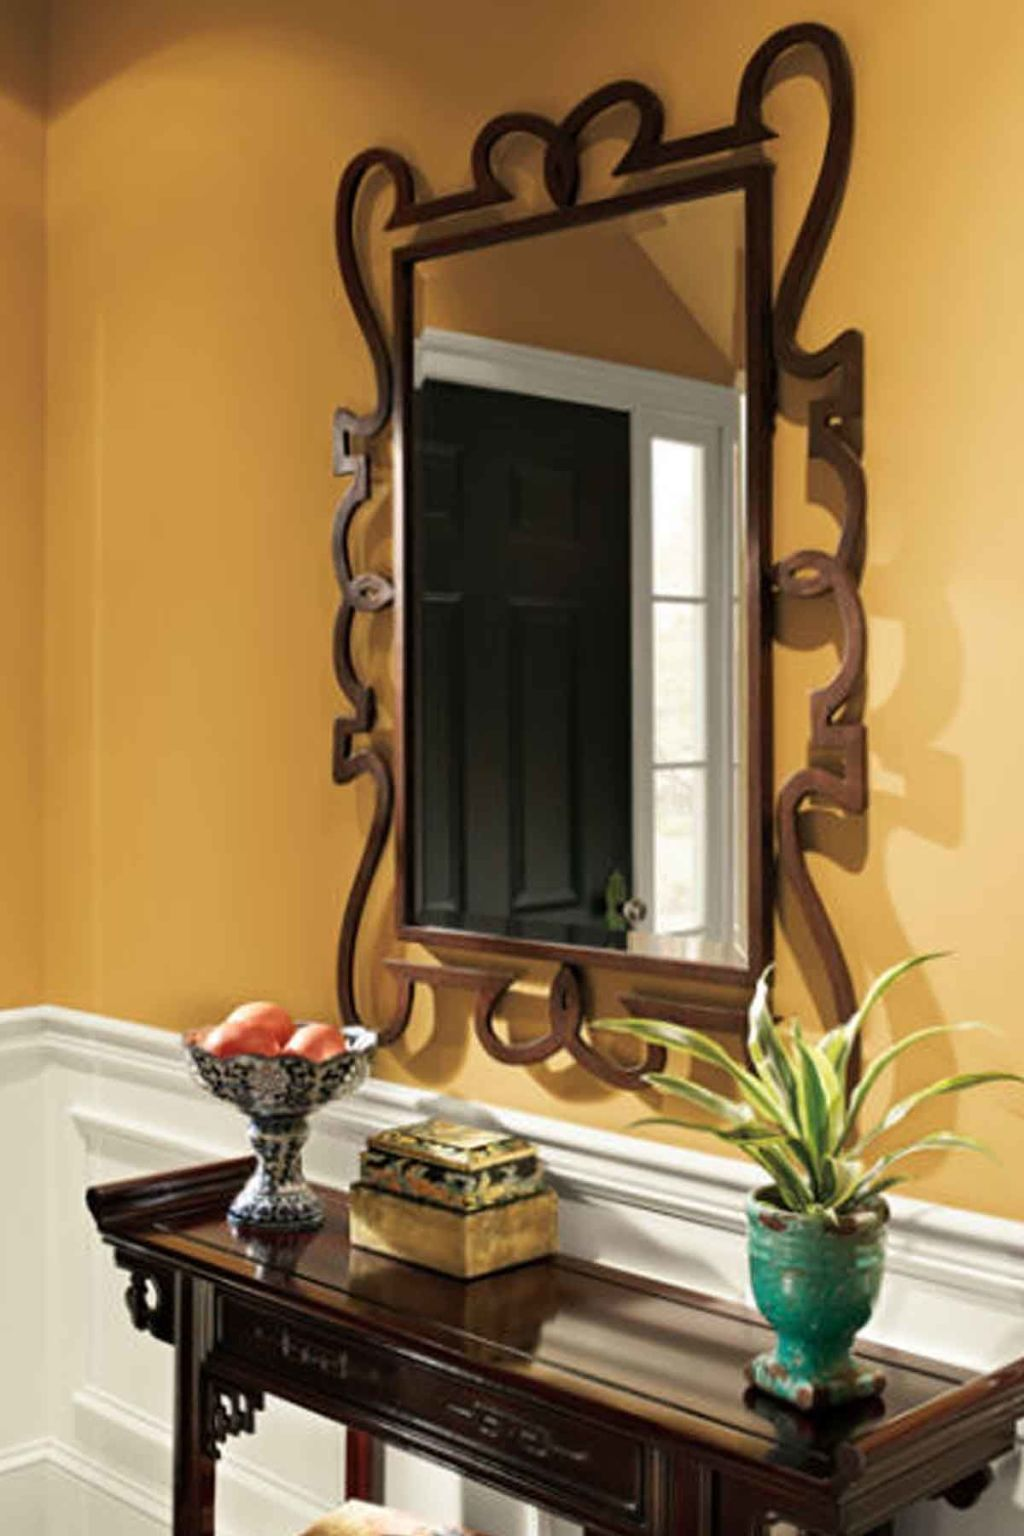 These Warm Paint Color Ideas Will Make Your Home Feel Extra Cozy Living Room Colors Warm Paint Colors Cozy Living Room Design #warm #cozy #colors #for #living #room